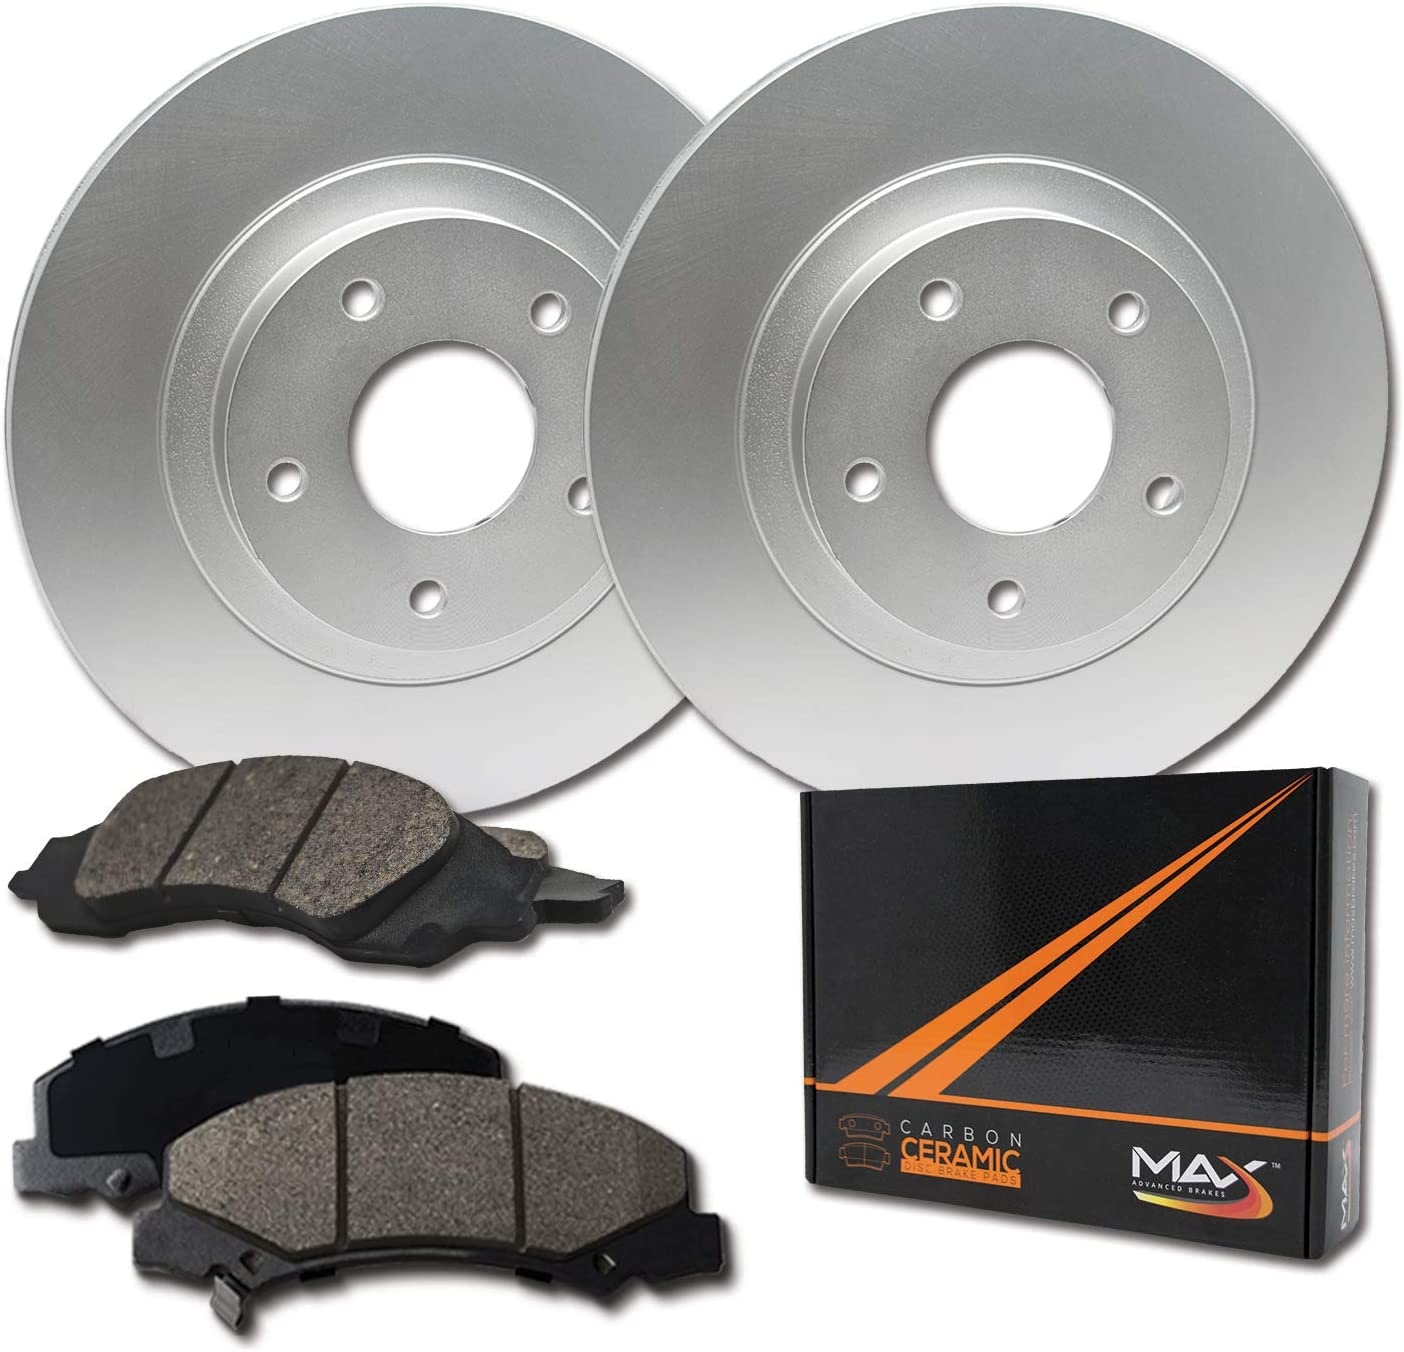 Front Max Brakes Geomet Ranking TOP19 OE Rotors KT0 Ceramic Carbon OFFicial store with Pads